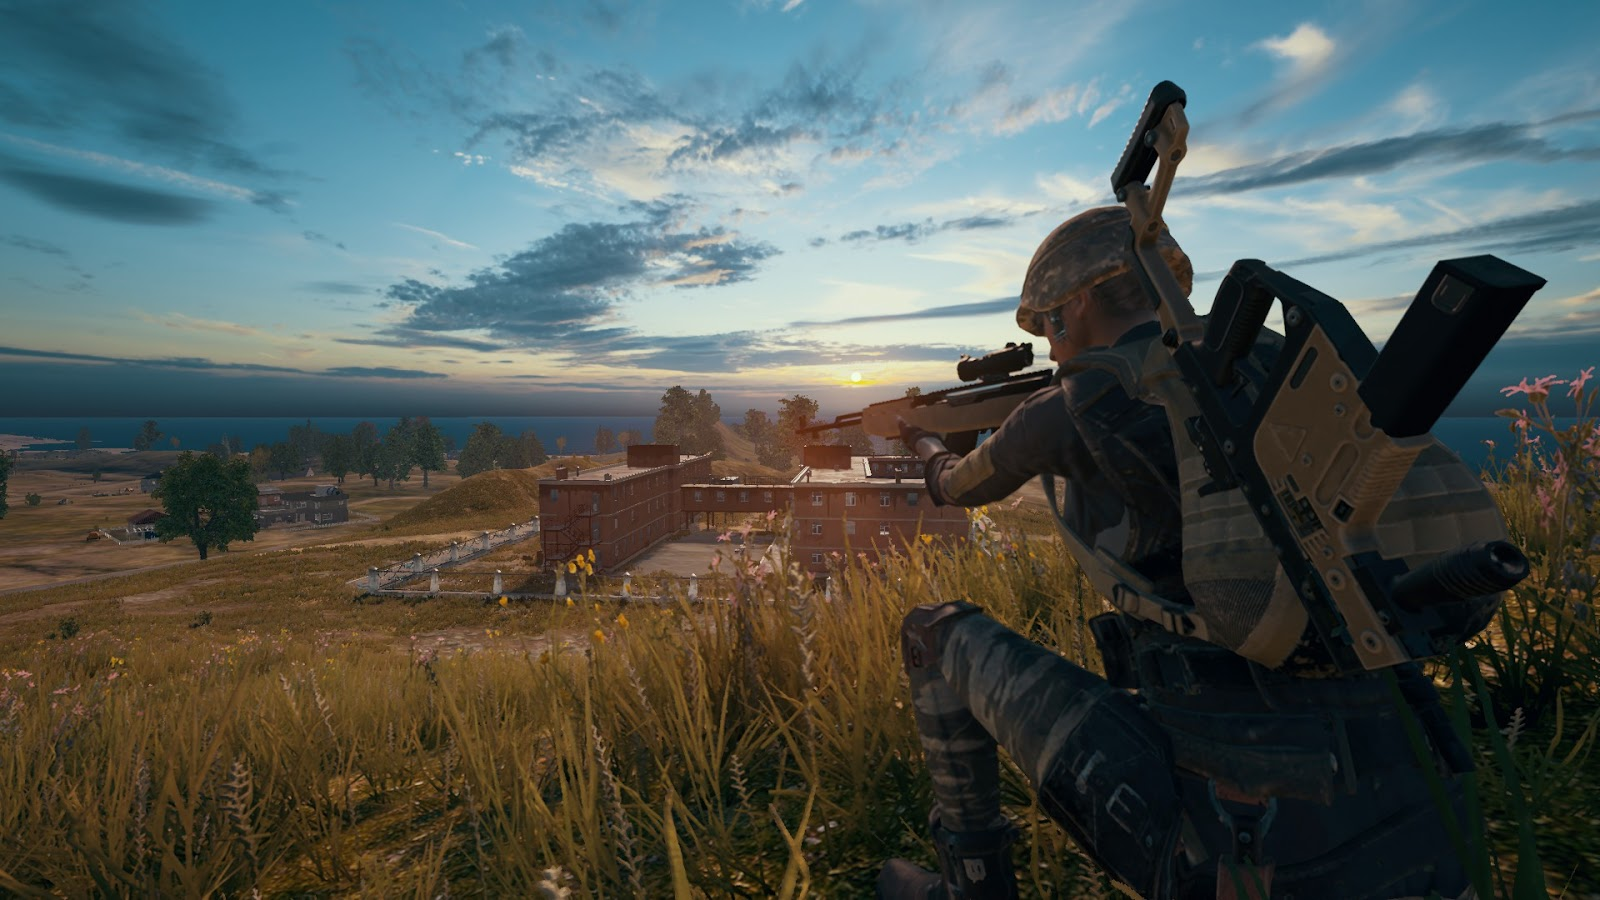 Pubg Map Hd Wallpaper: PUBG 4K ULTRA HD WALLPAPERS FOR PC AND MOBILE